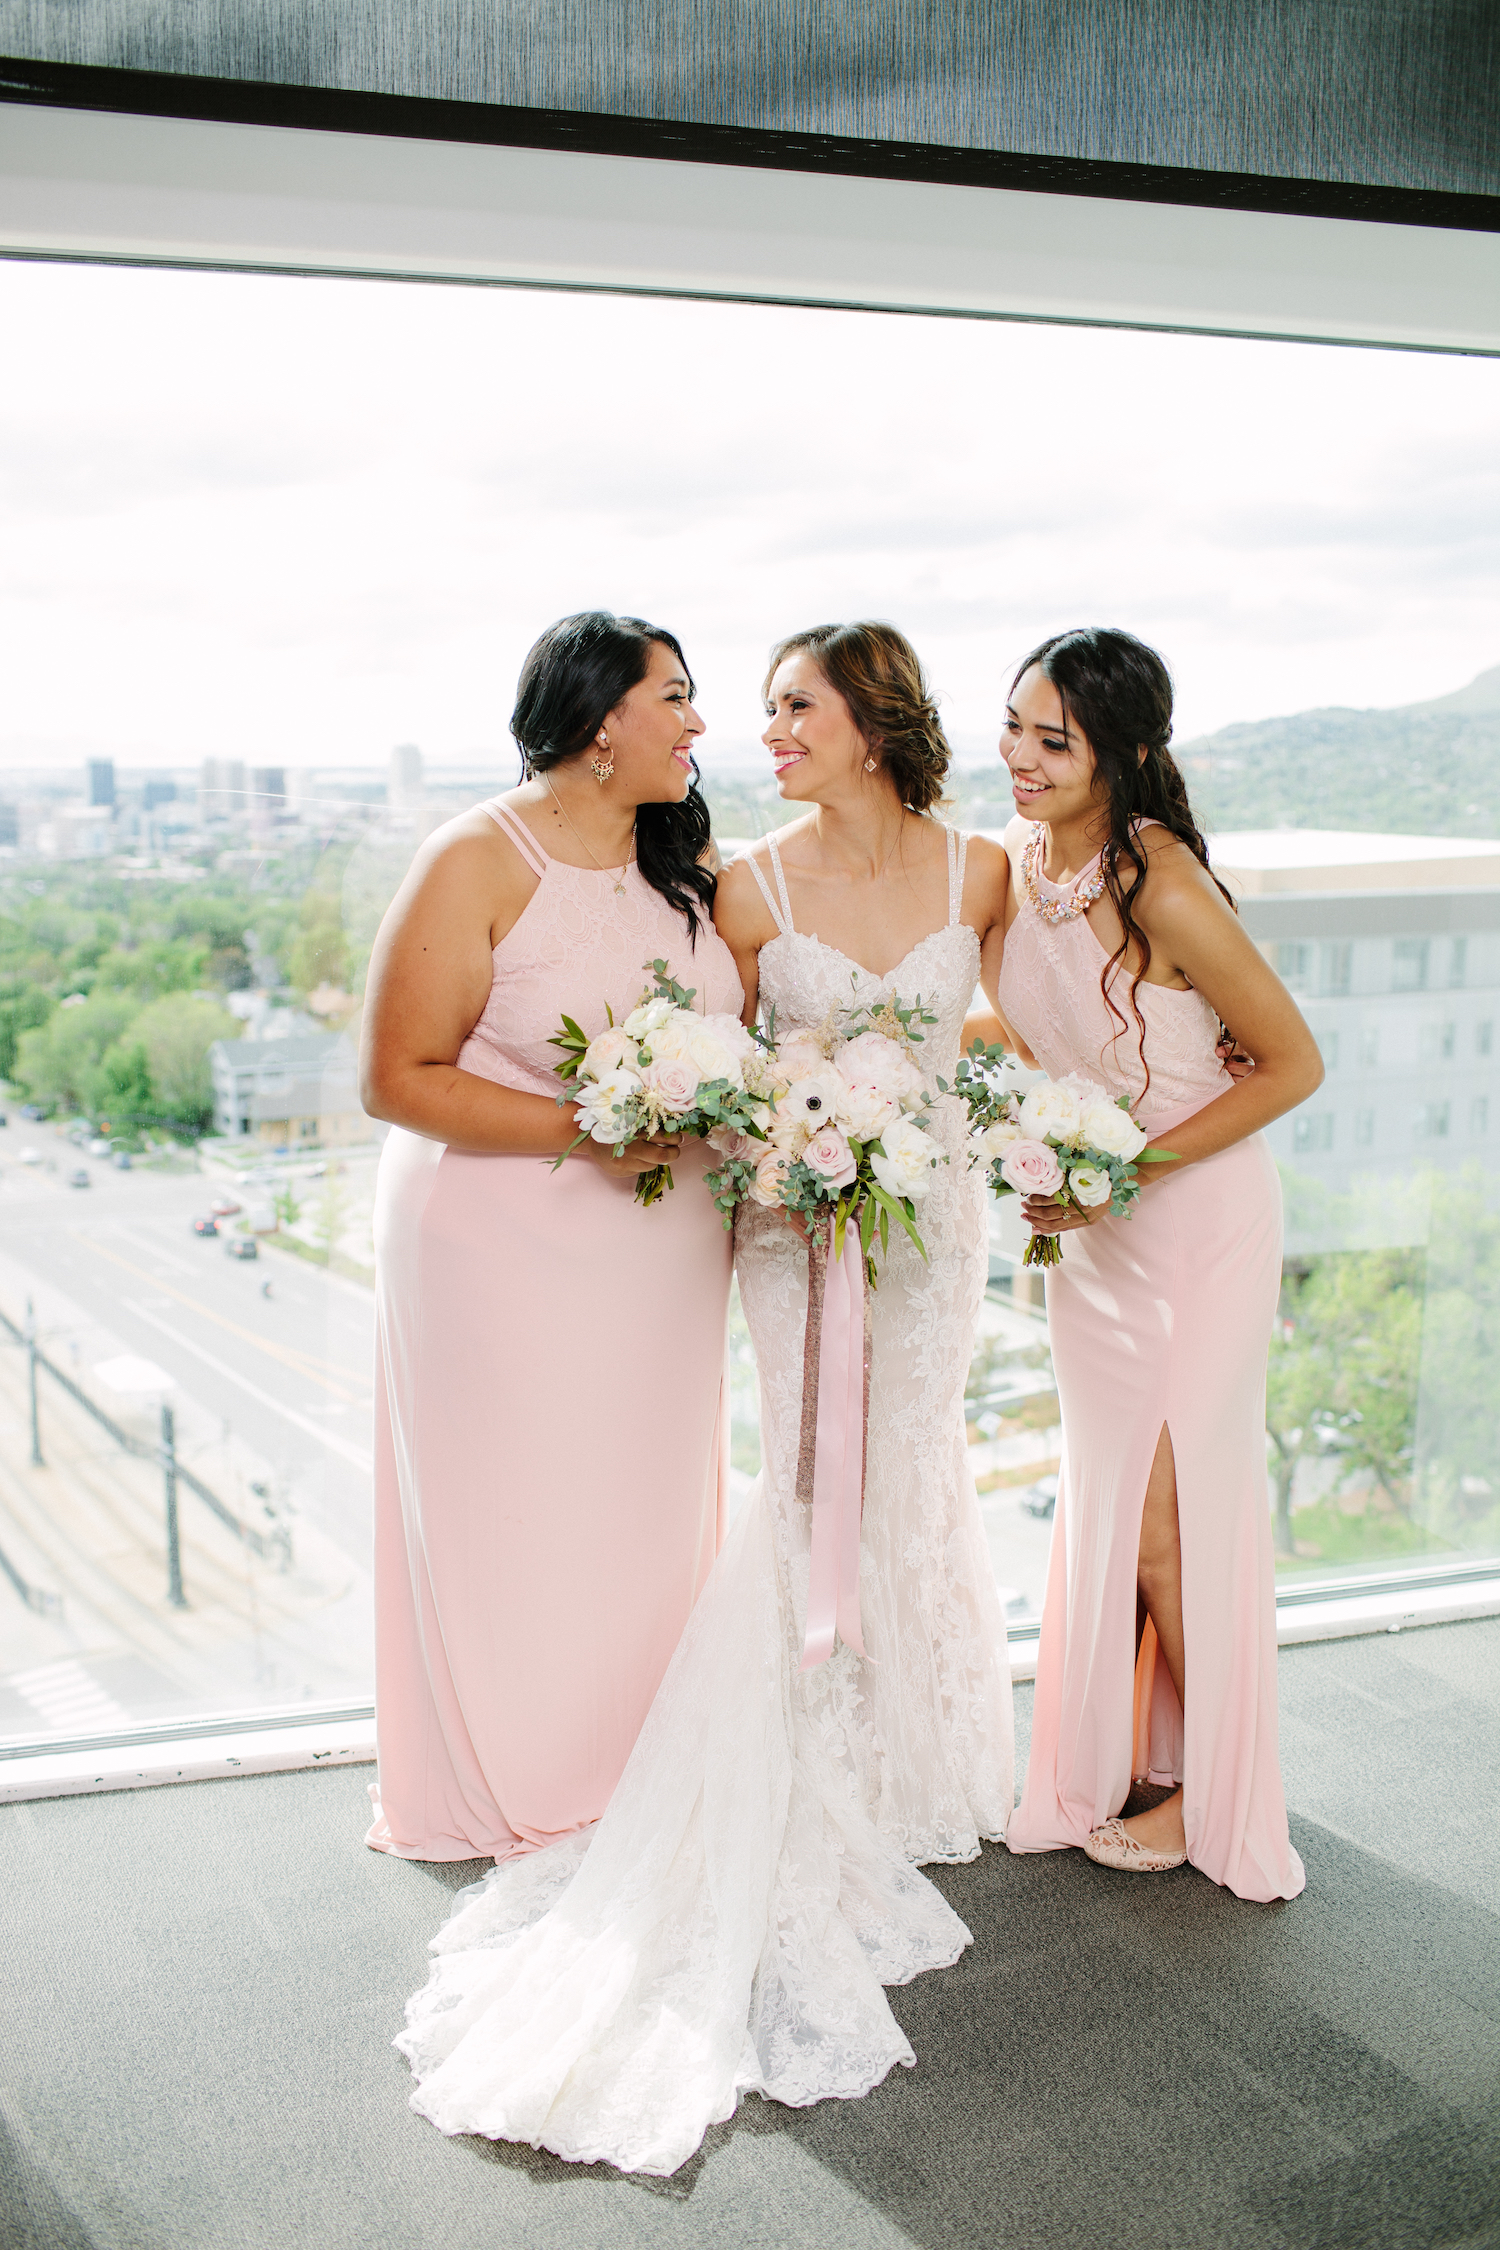 bride-bridesmaids-bouquets-utah-wedding-florist-tower-rice-eccles-brushfire-photography.jpg